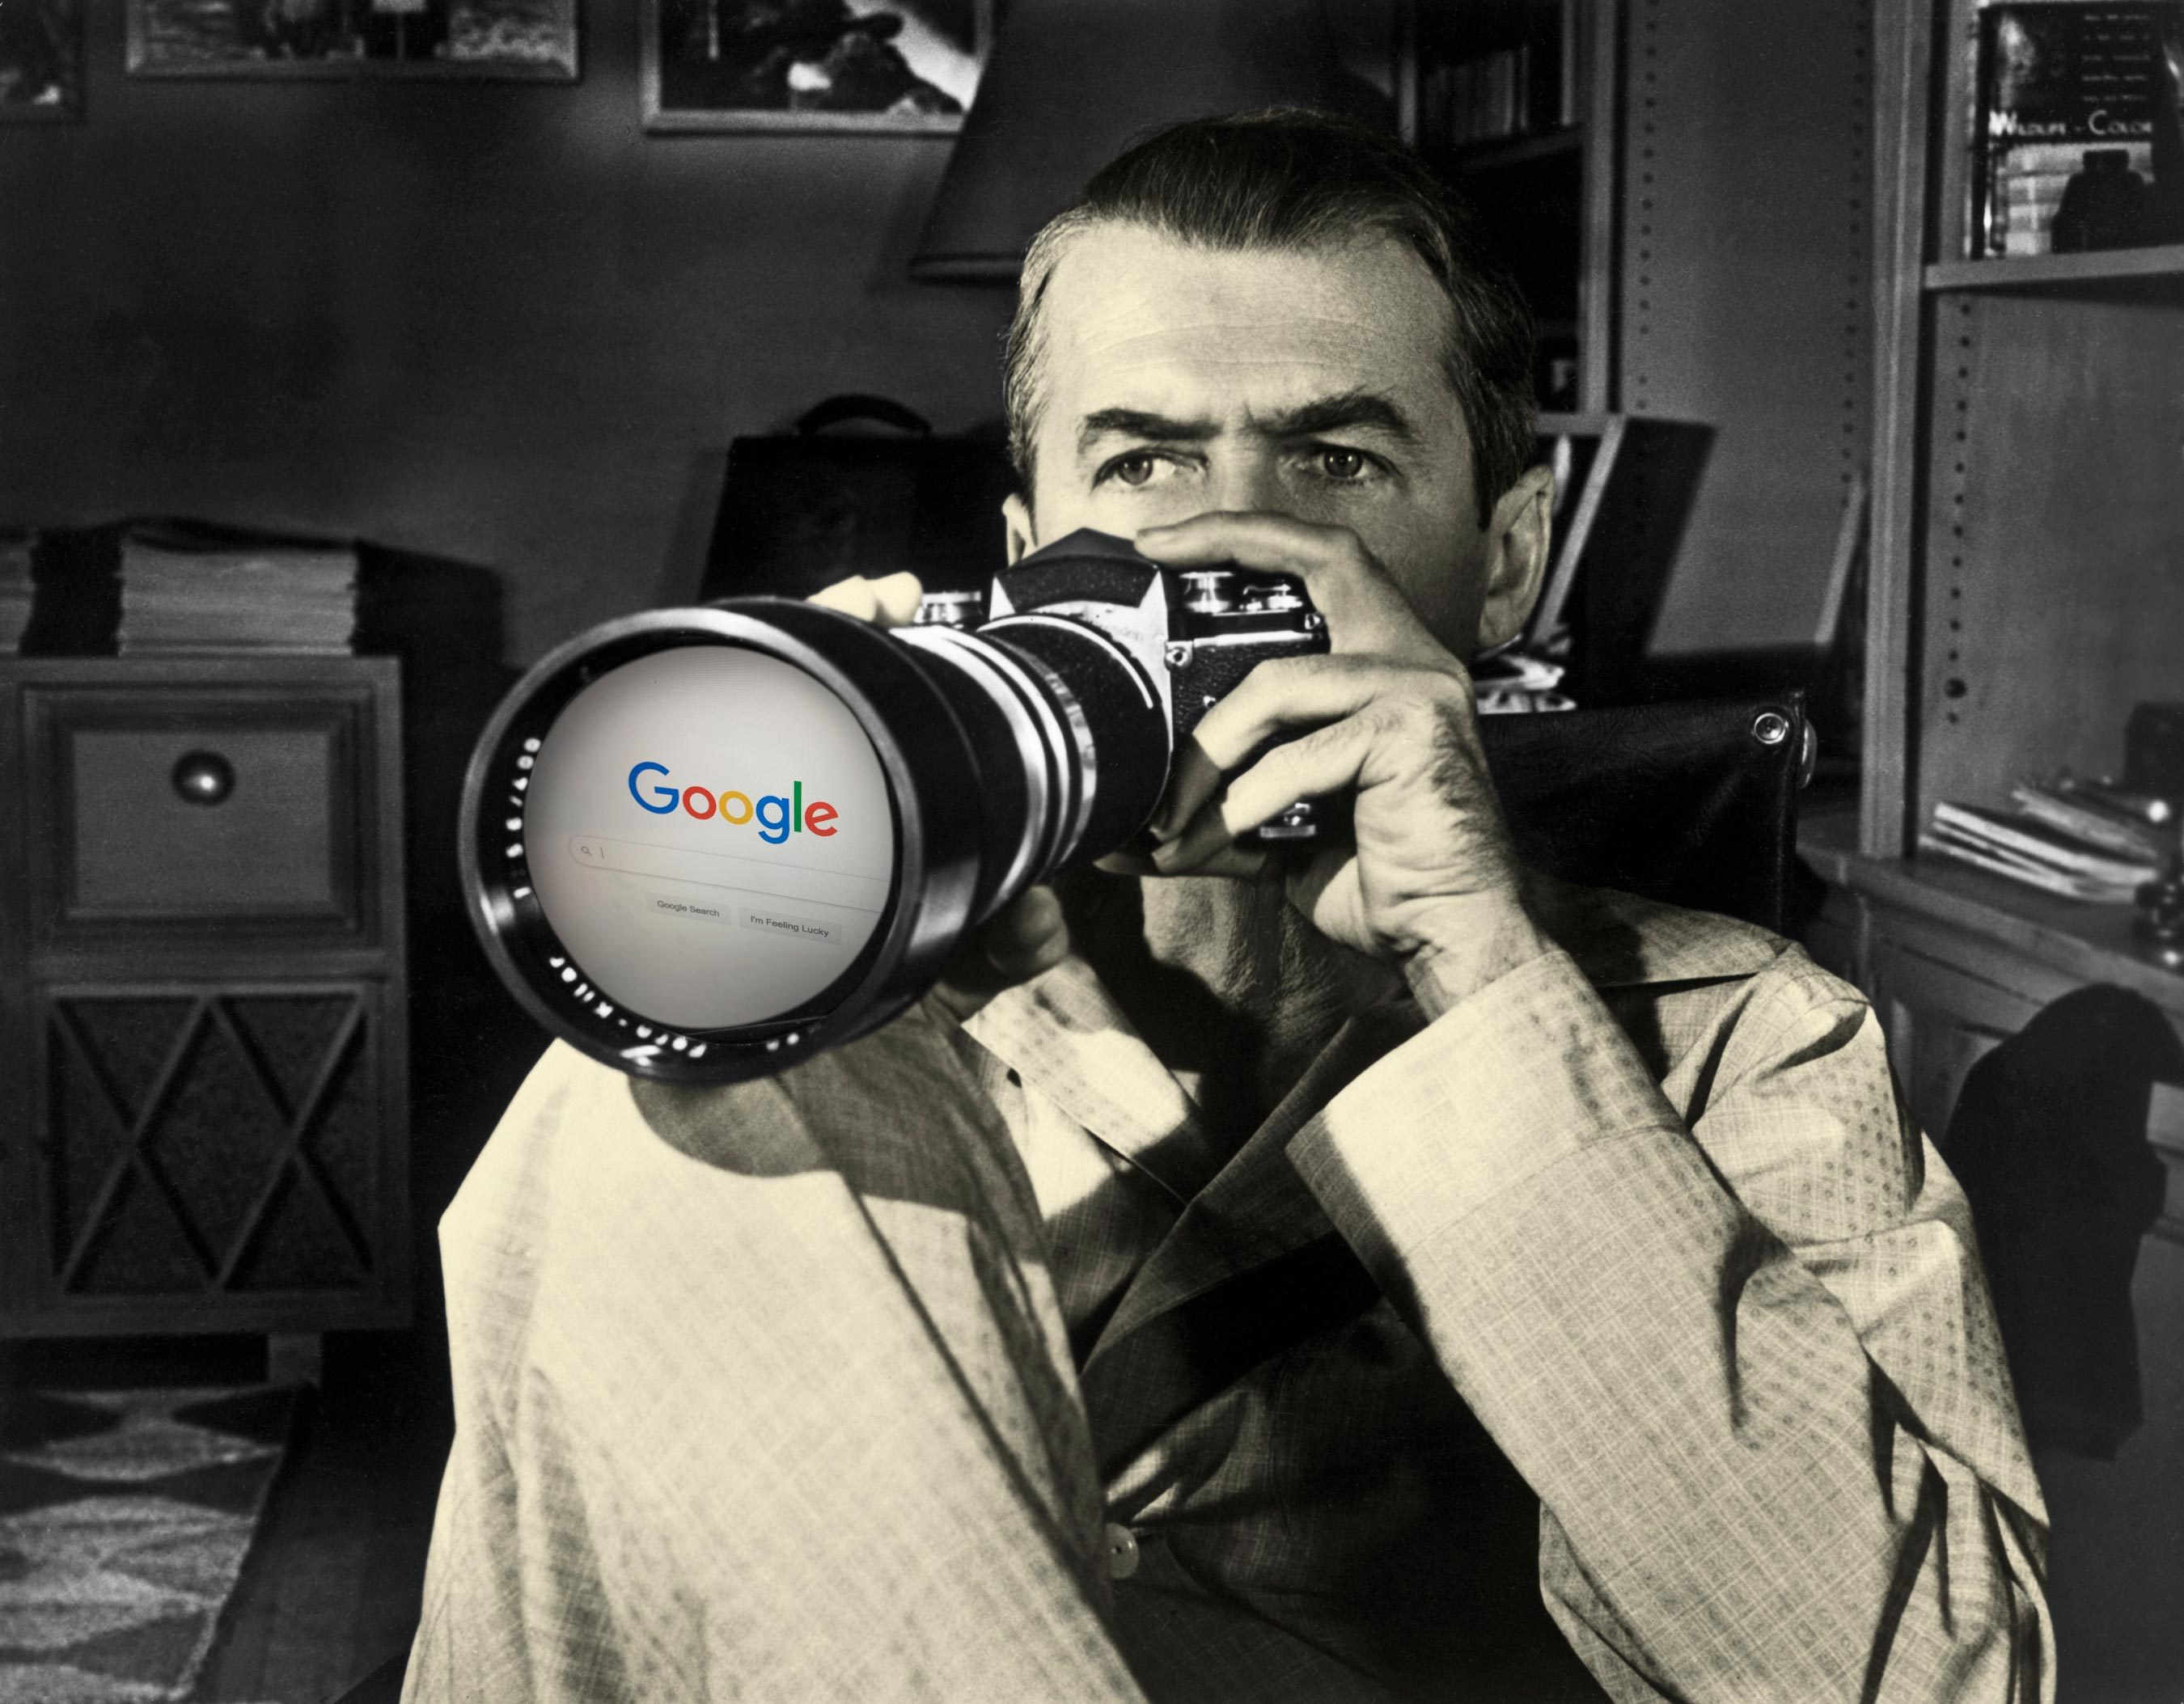 rear window movie still with google homepage in camera lens